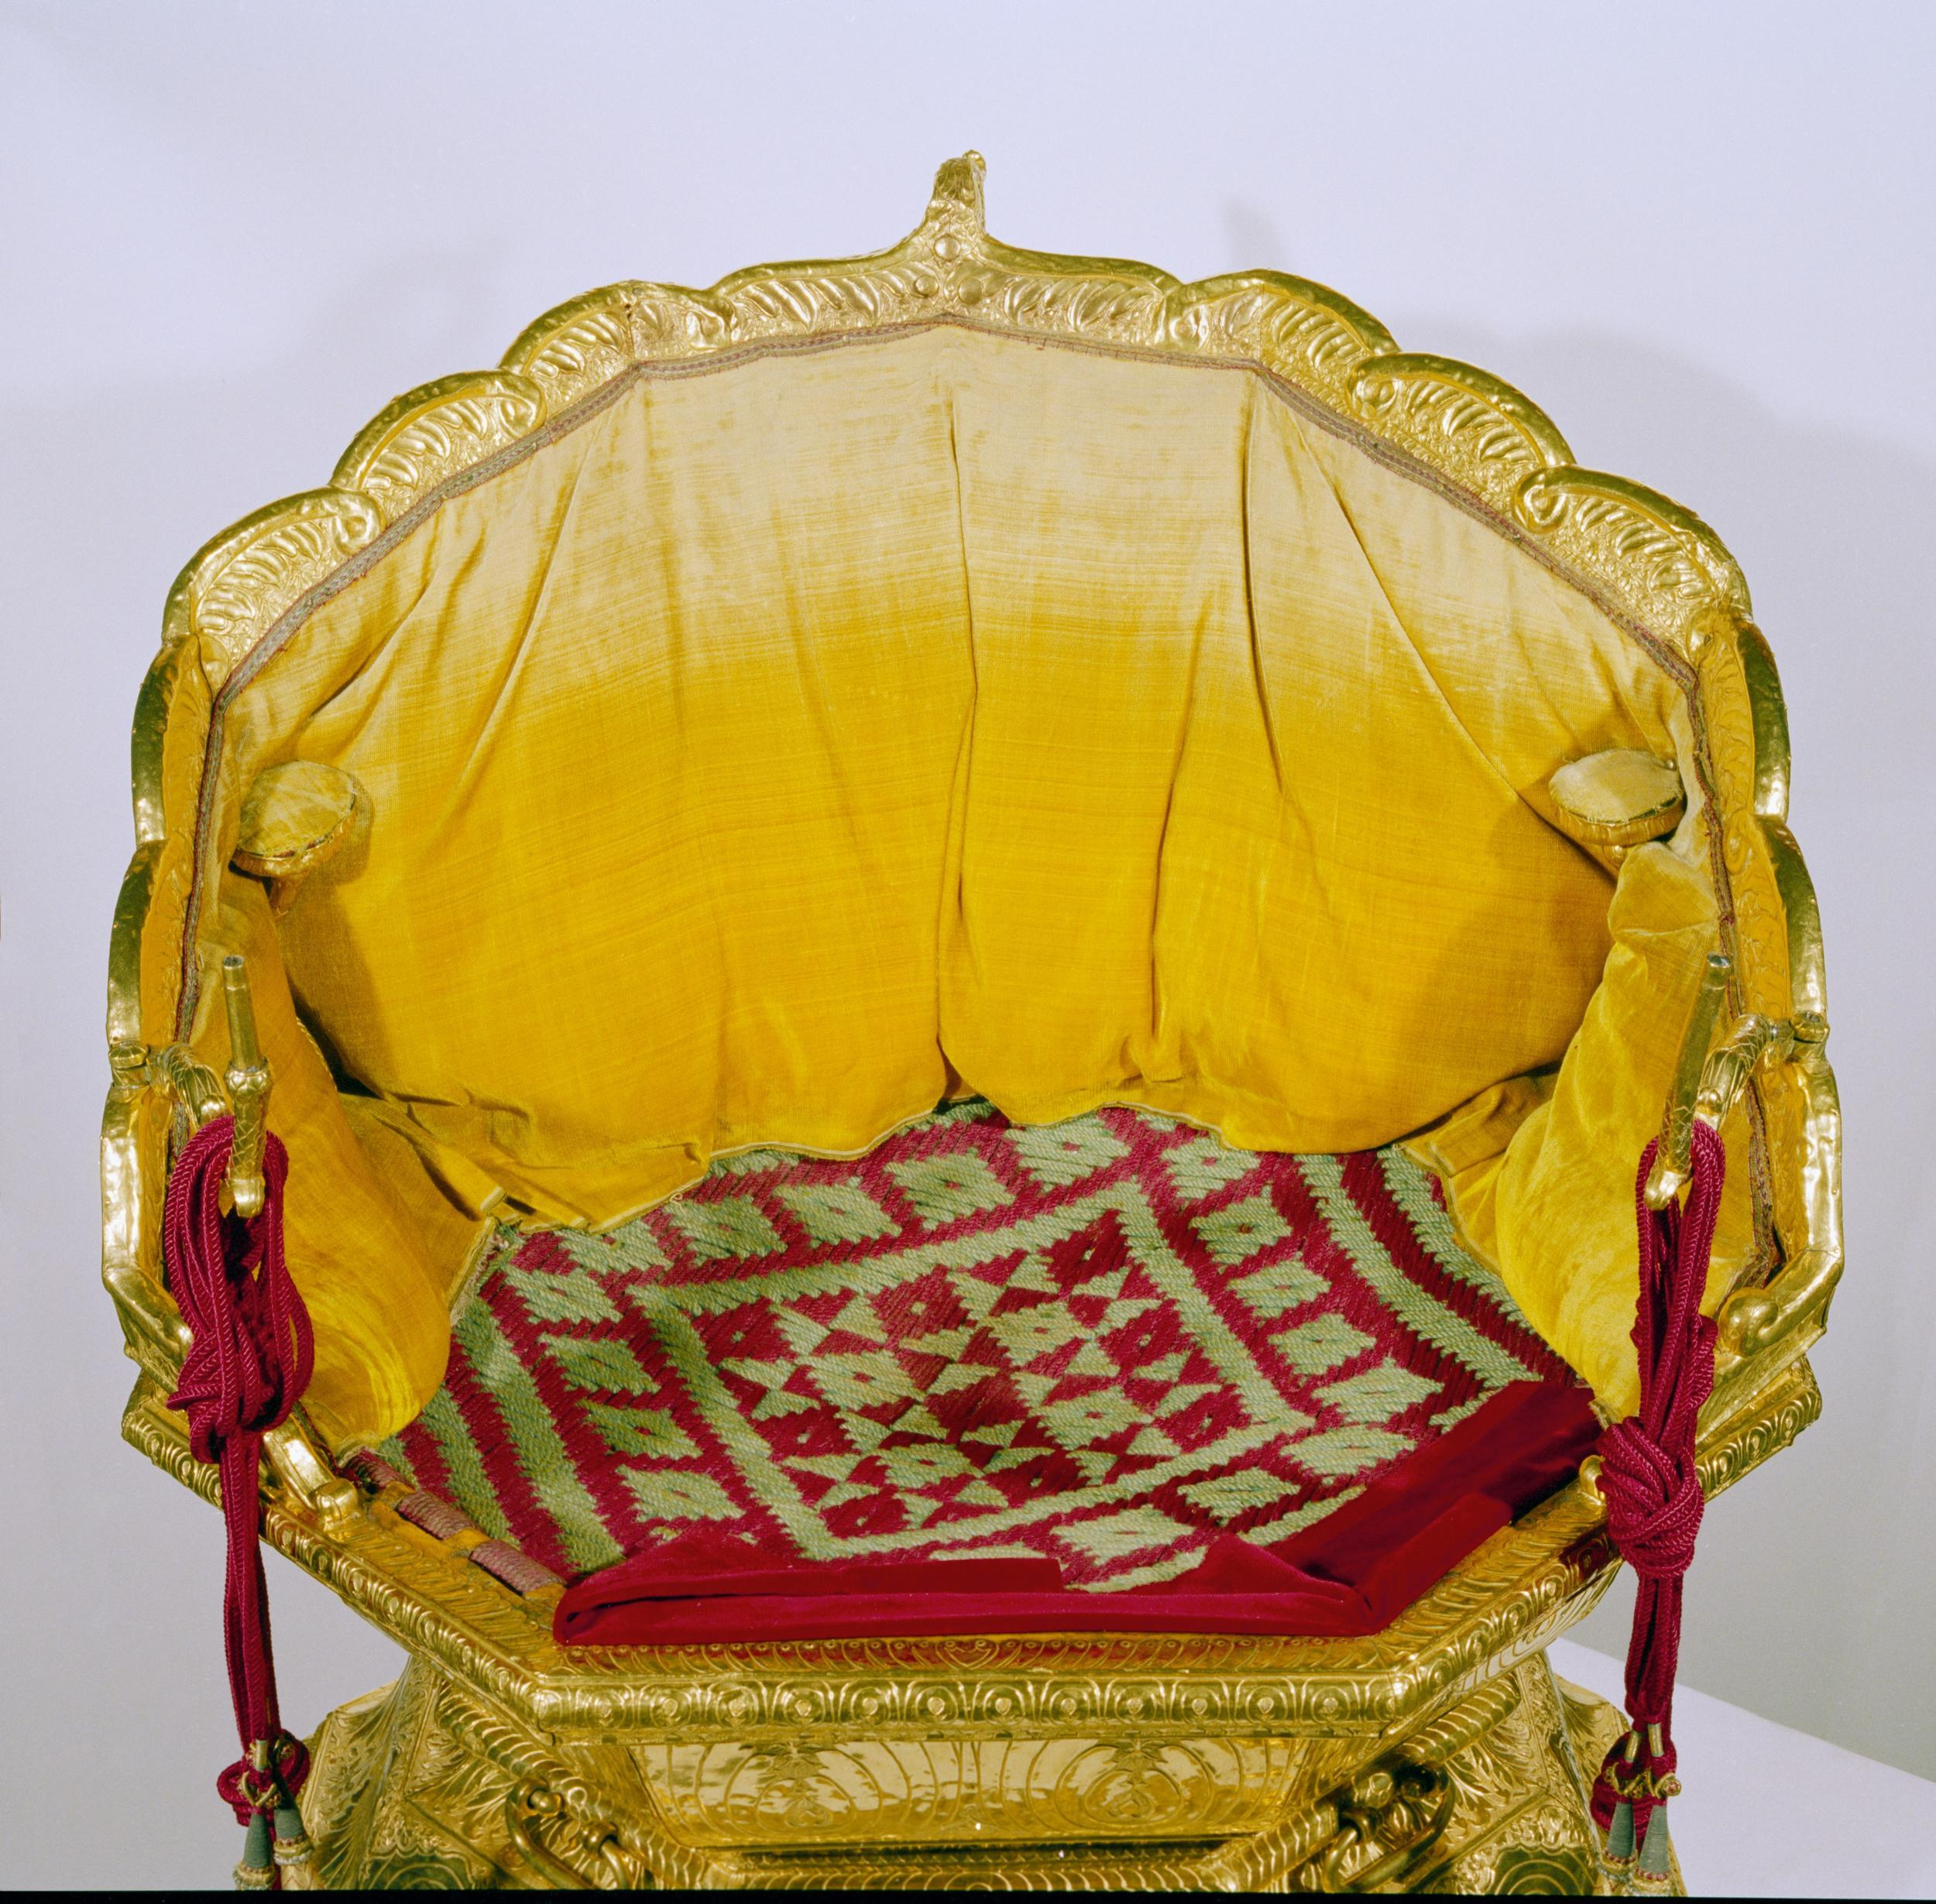 The golden throne of Maharaja Ranjit Singh – Anglo Sikh Wars